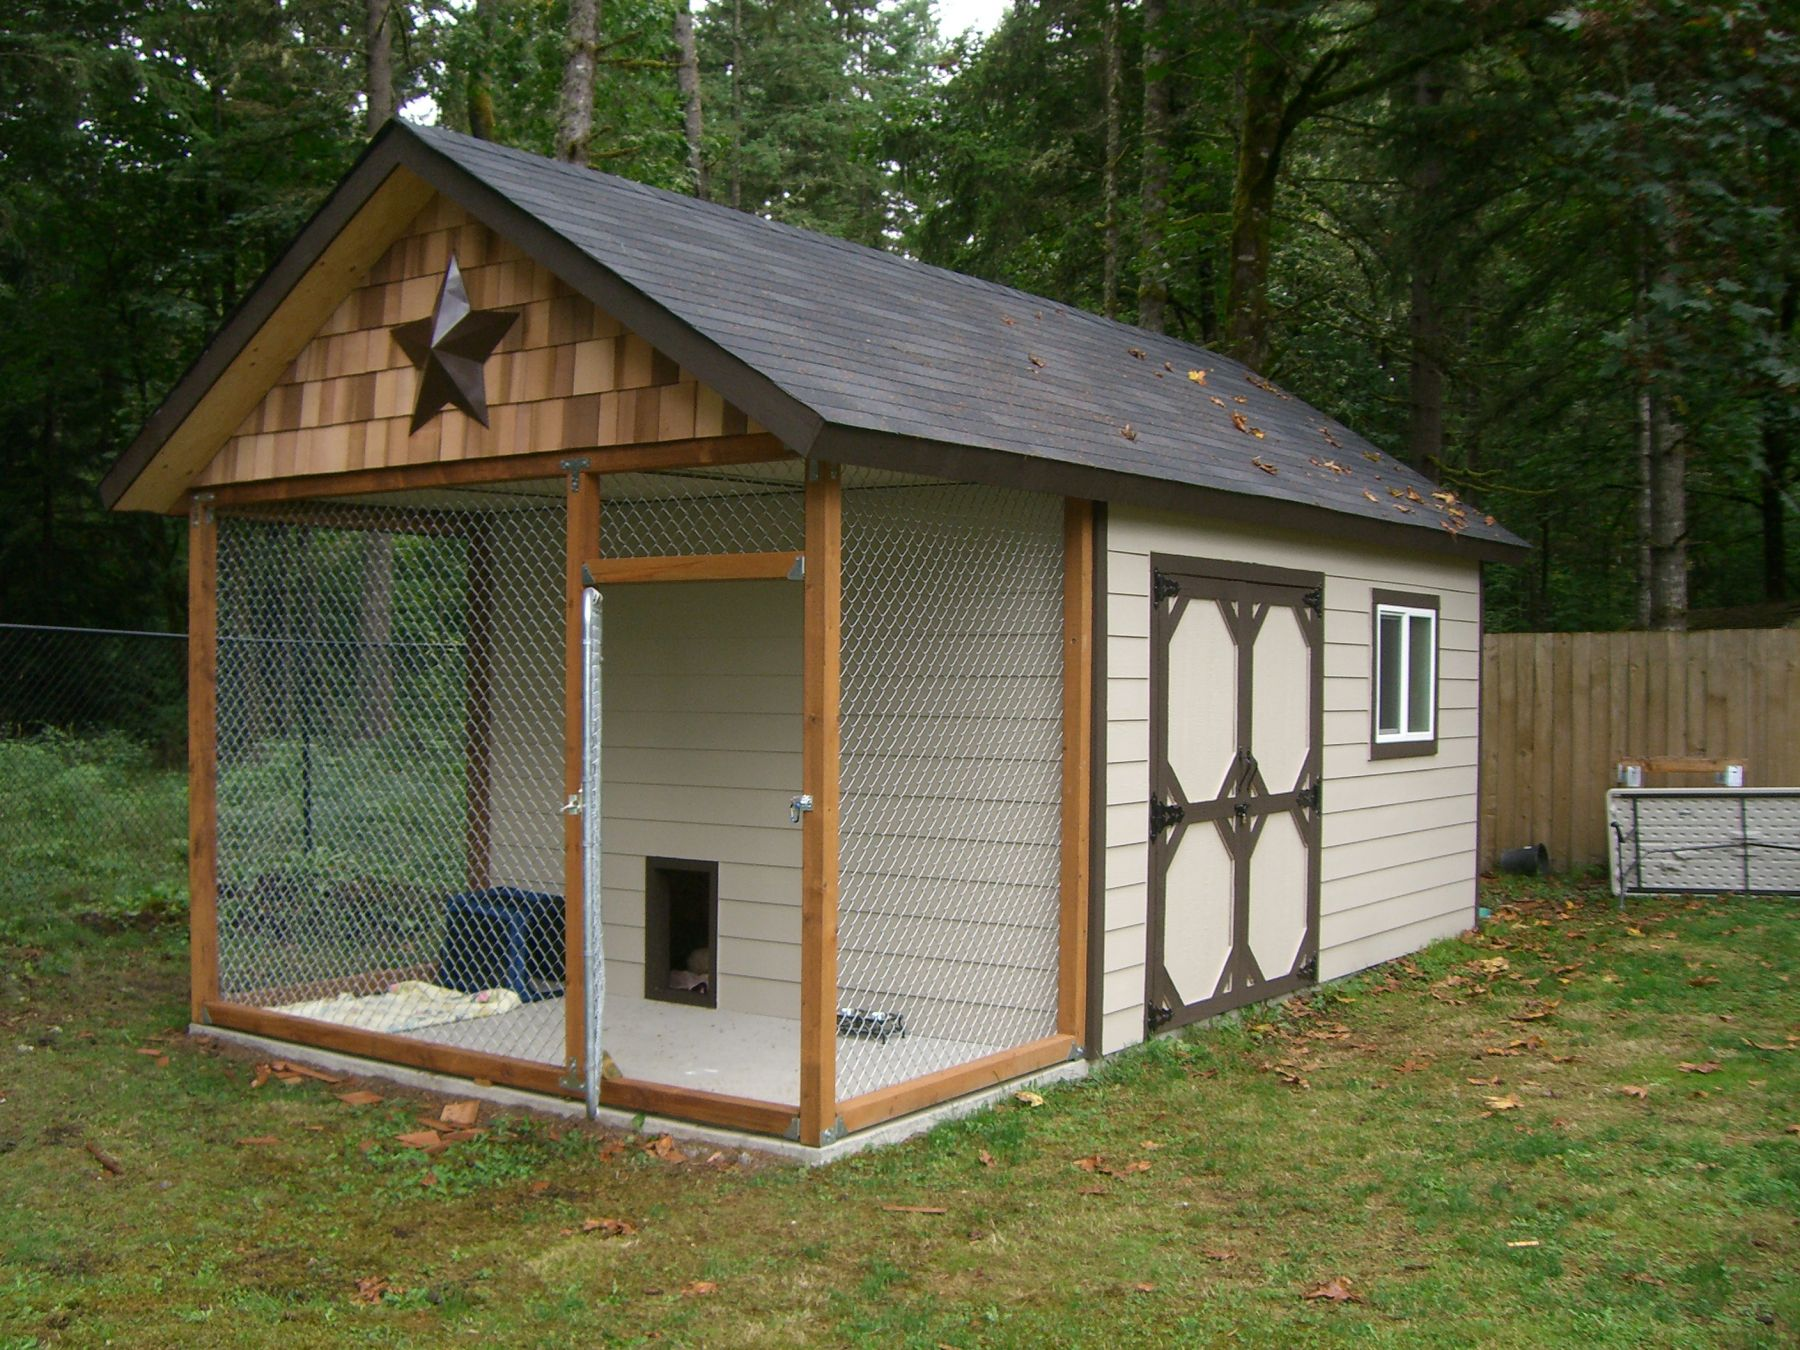 doghouse shed design ideas - Shed Ideas Designs